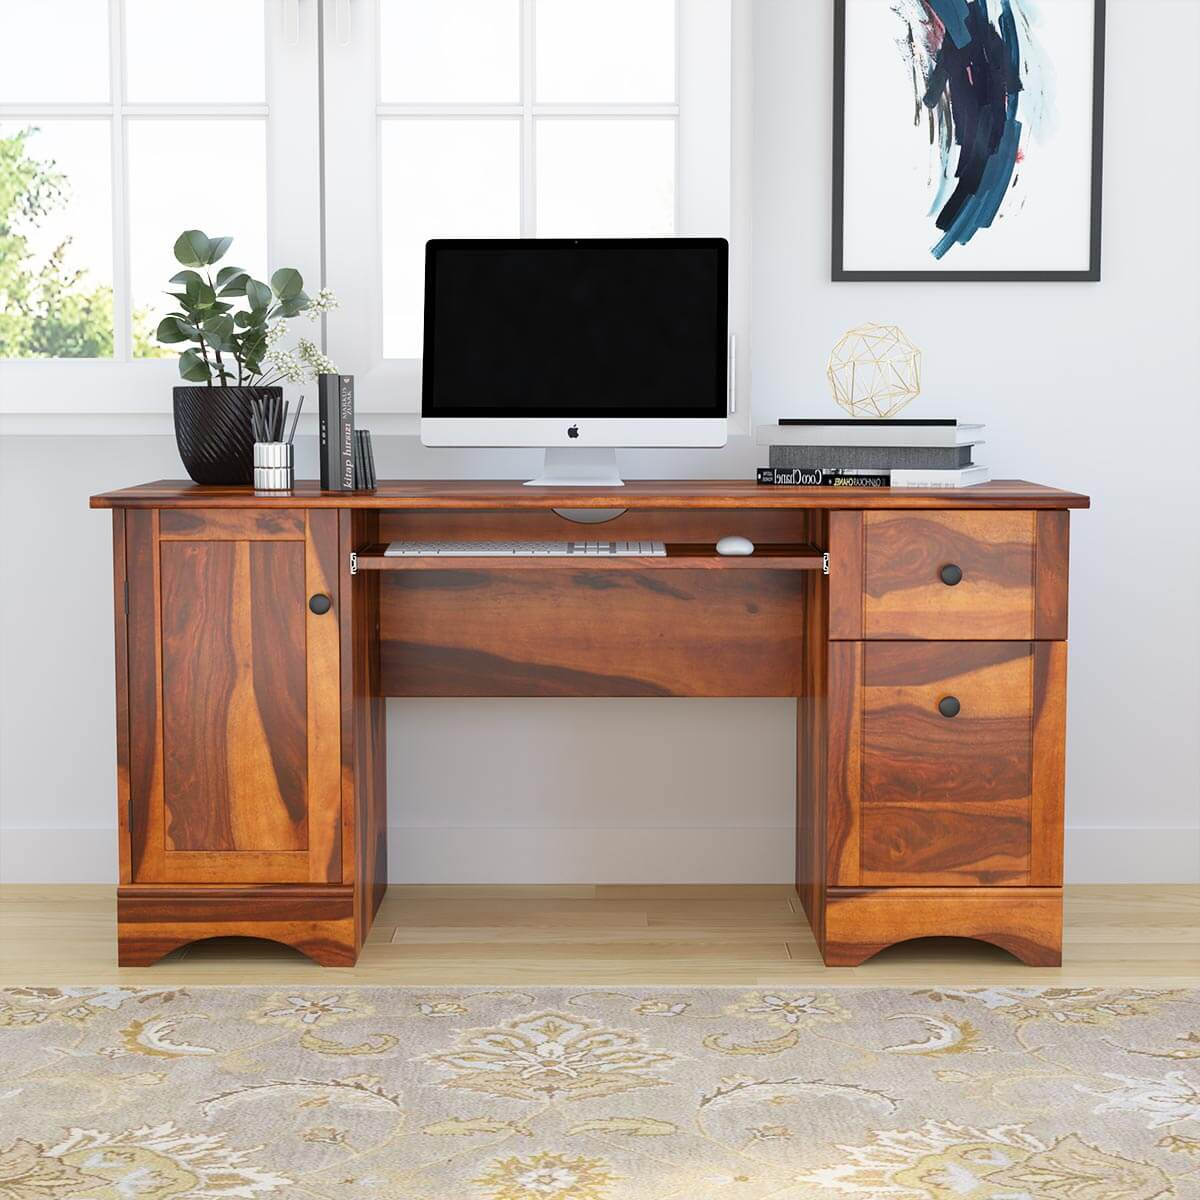 gisela rustic solid wood computer desk with cabinet drawers. Black Bedroom Furniture Sets. Home Design Ideas